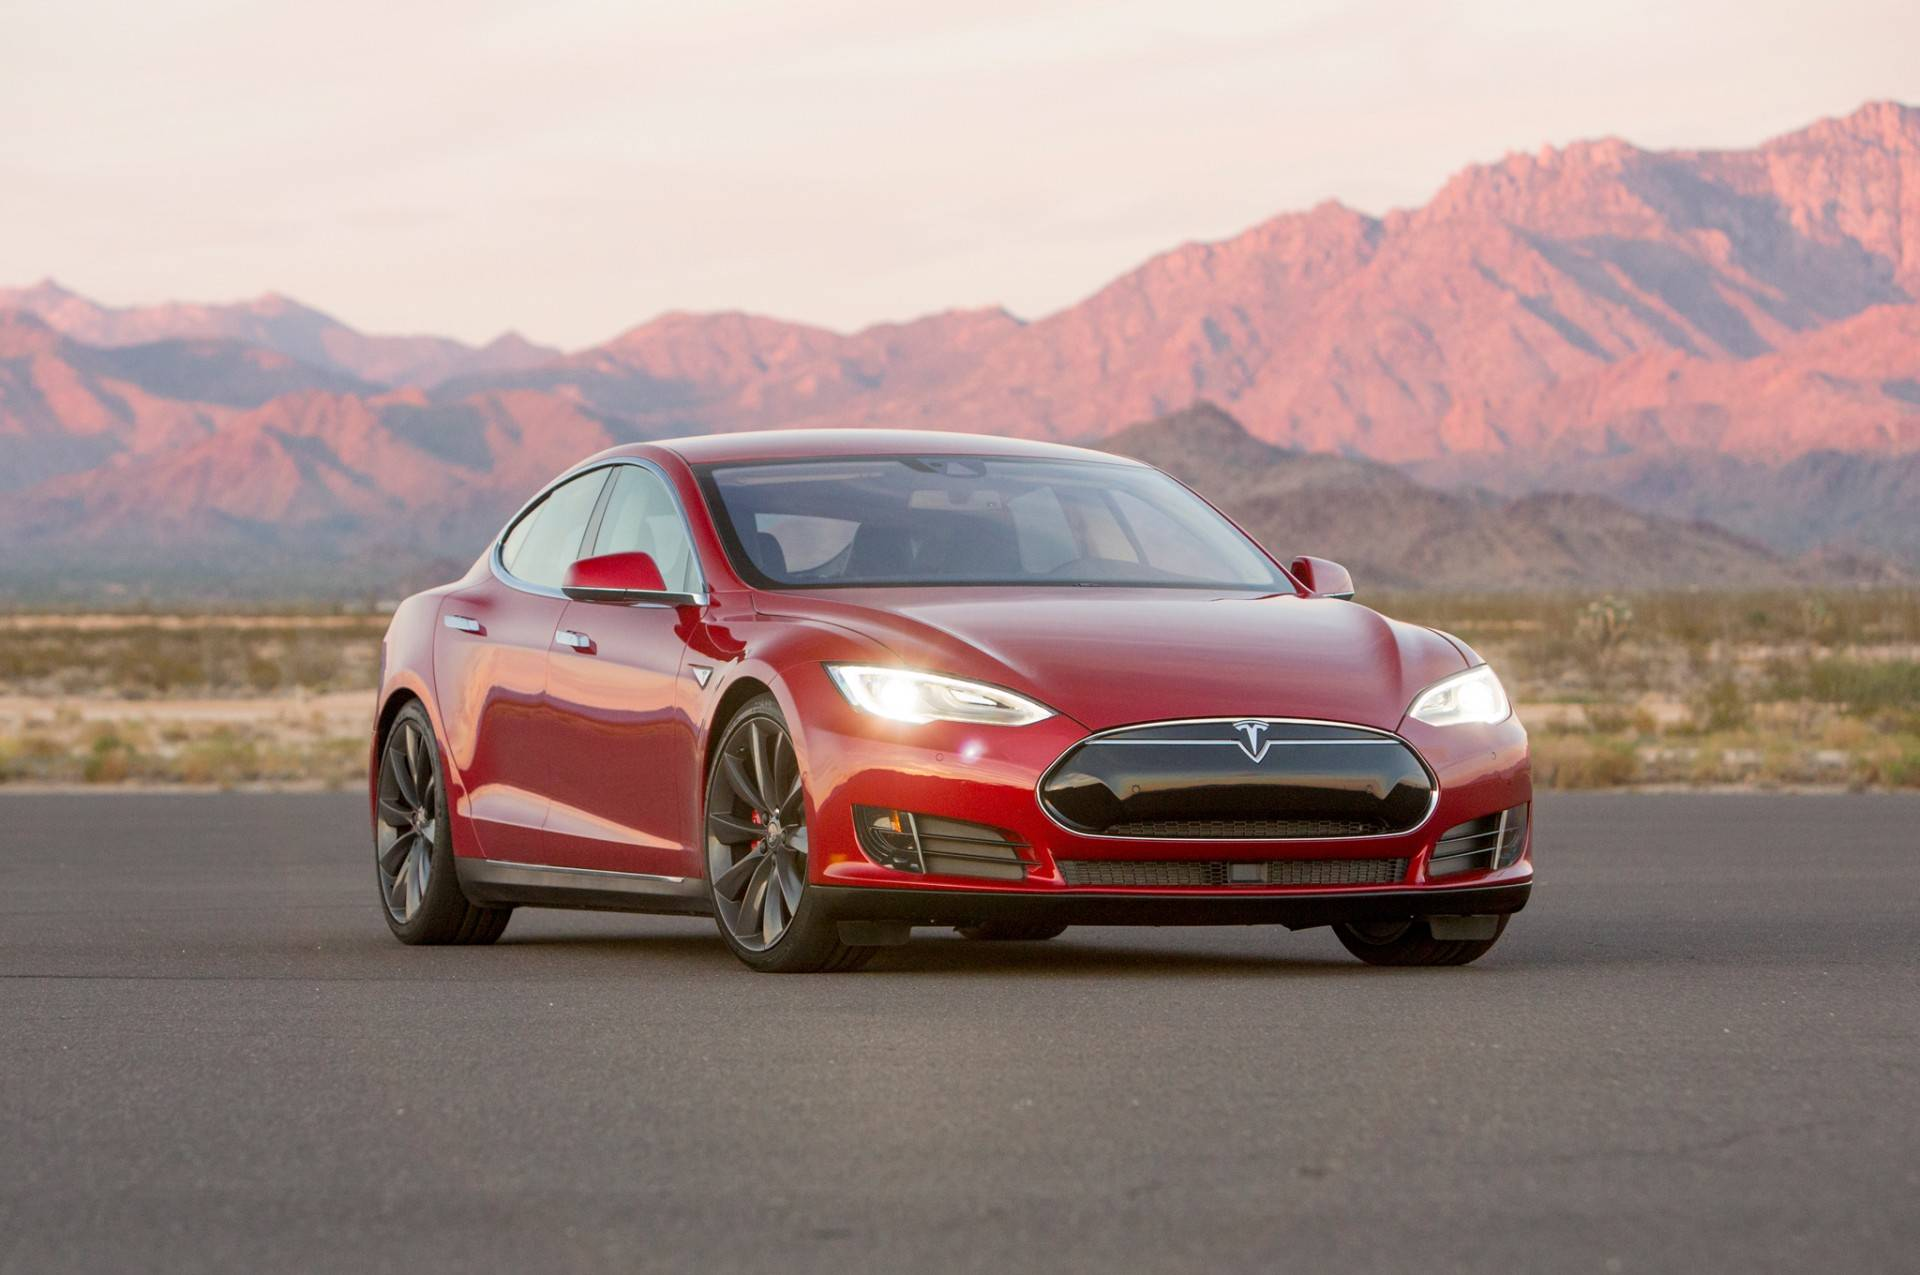 2015-Tesla-Model-S-P90D-front-three-quarter-02